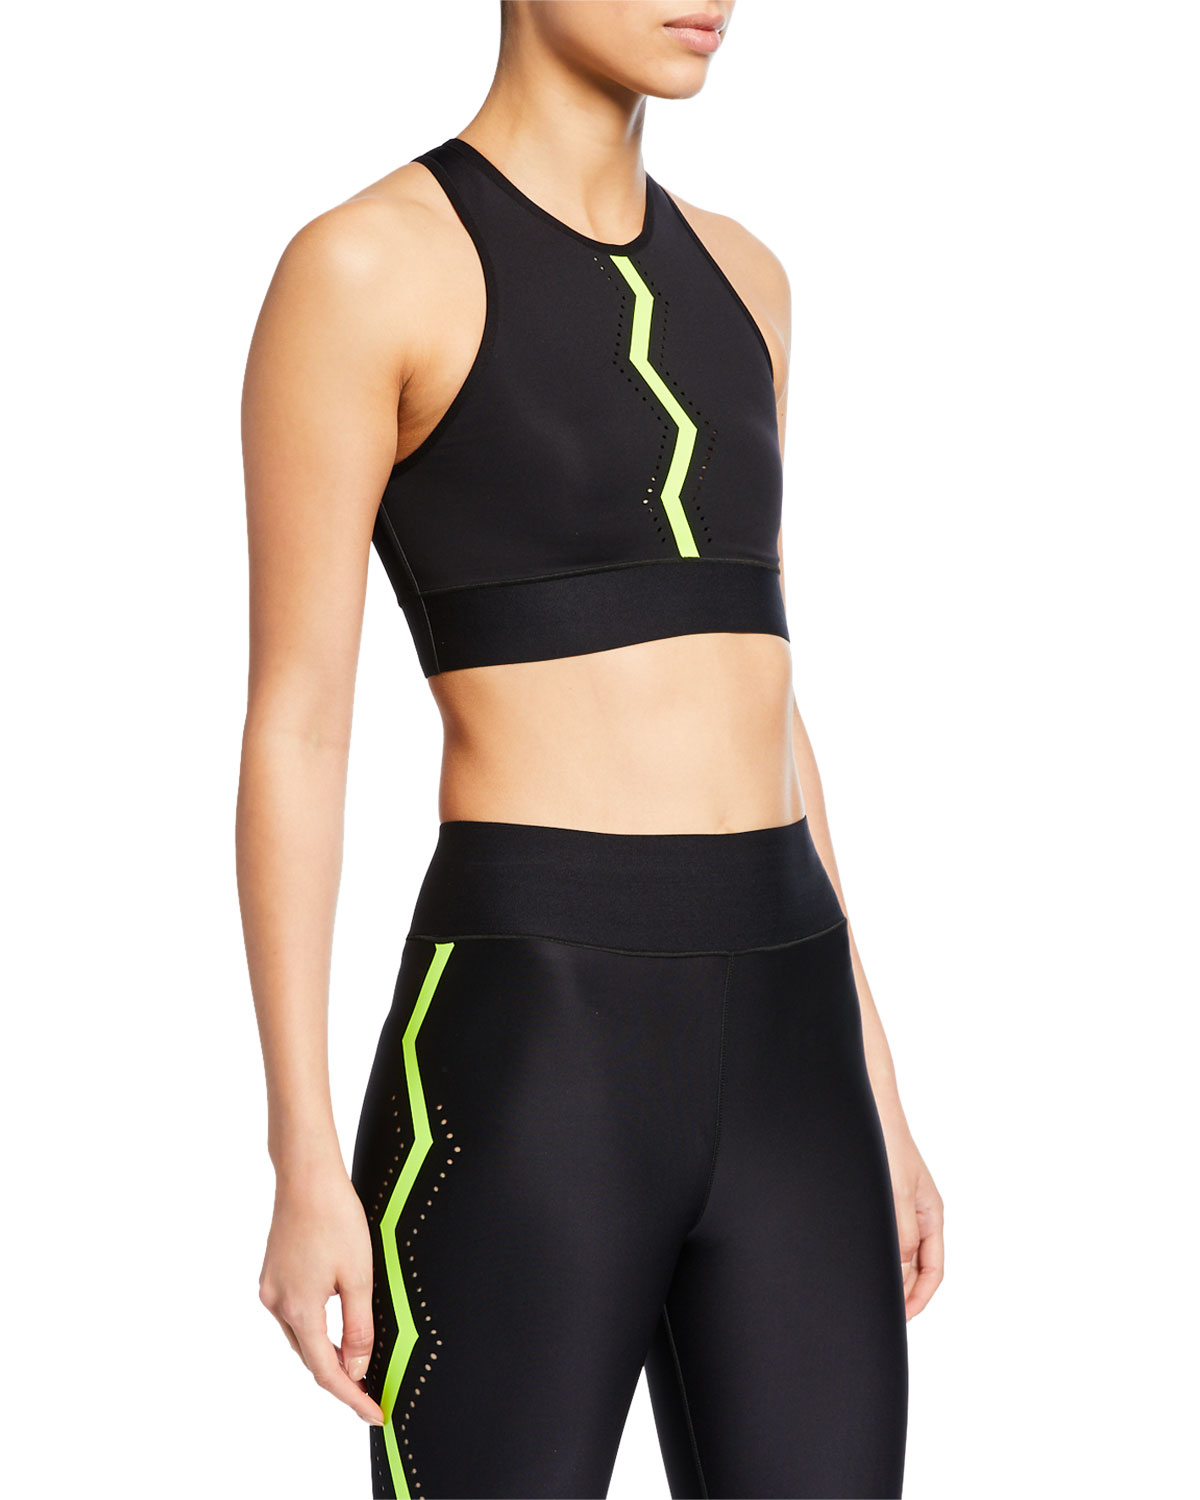 Ultracor ALTITUDE SERRATED PERFORMANCE CROP TOP